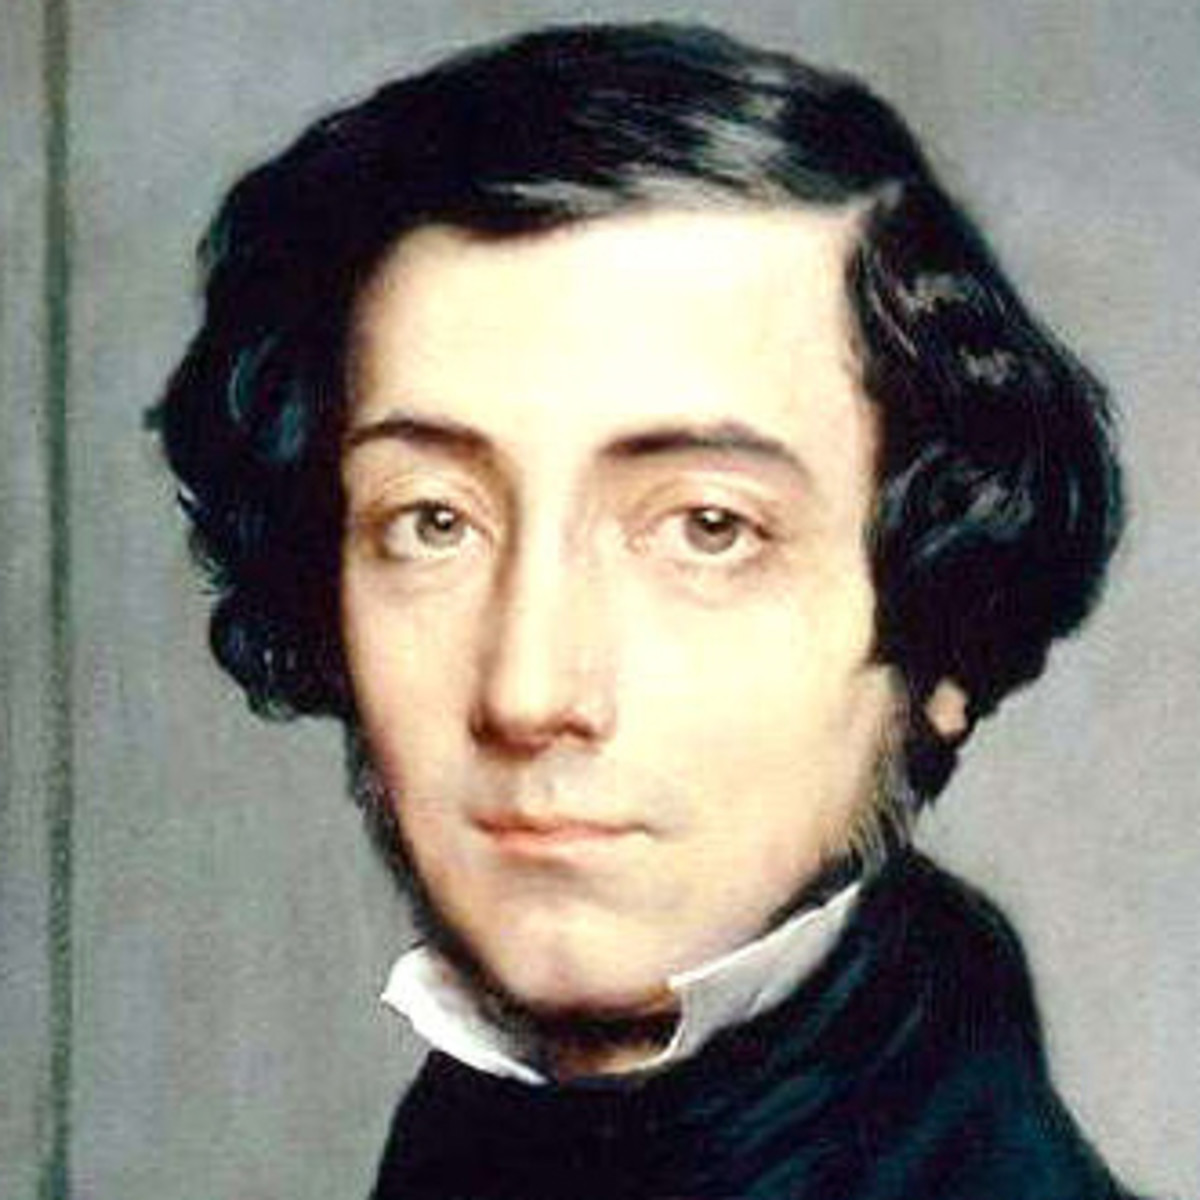 an analysis of liberty in society according to adam smith and alexis de tocqueville Why there is a culture war: gramsci and tocqueville in america century french intellectual alexis de tocqueville montesquieu, and adam smith.